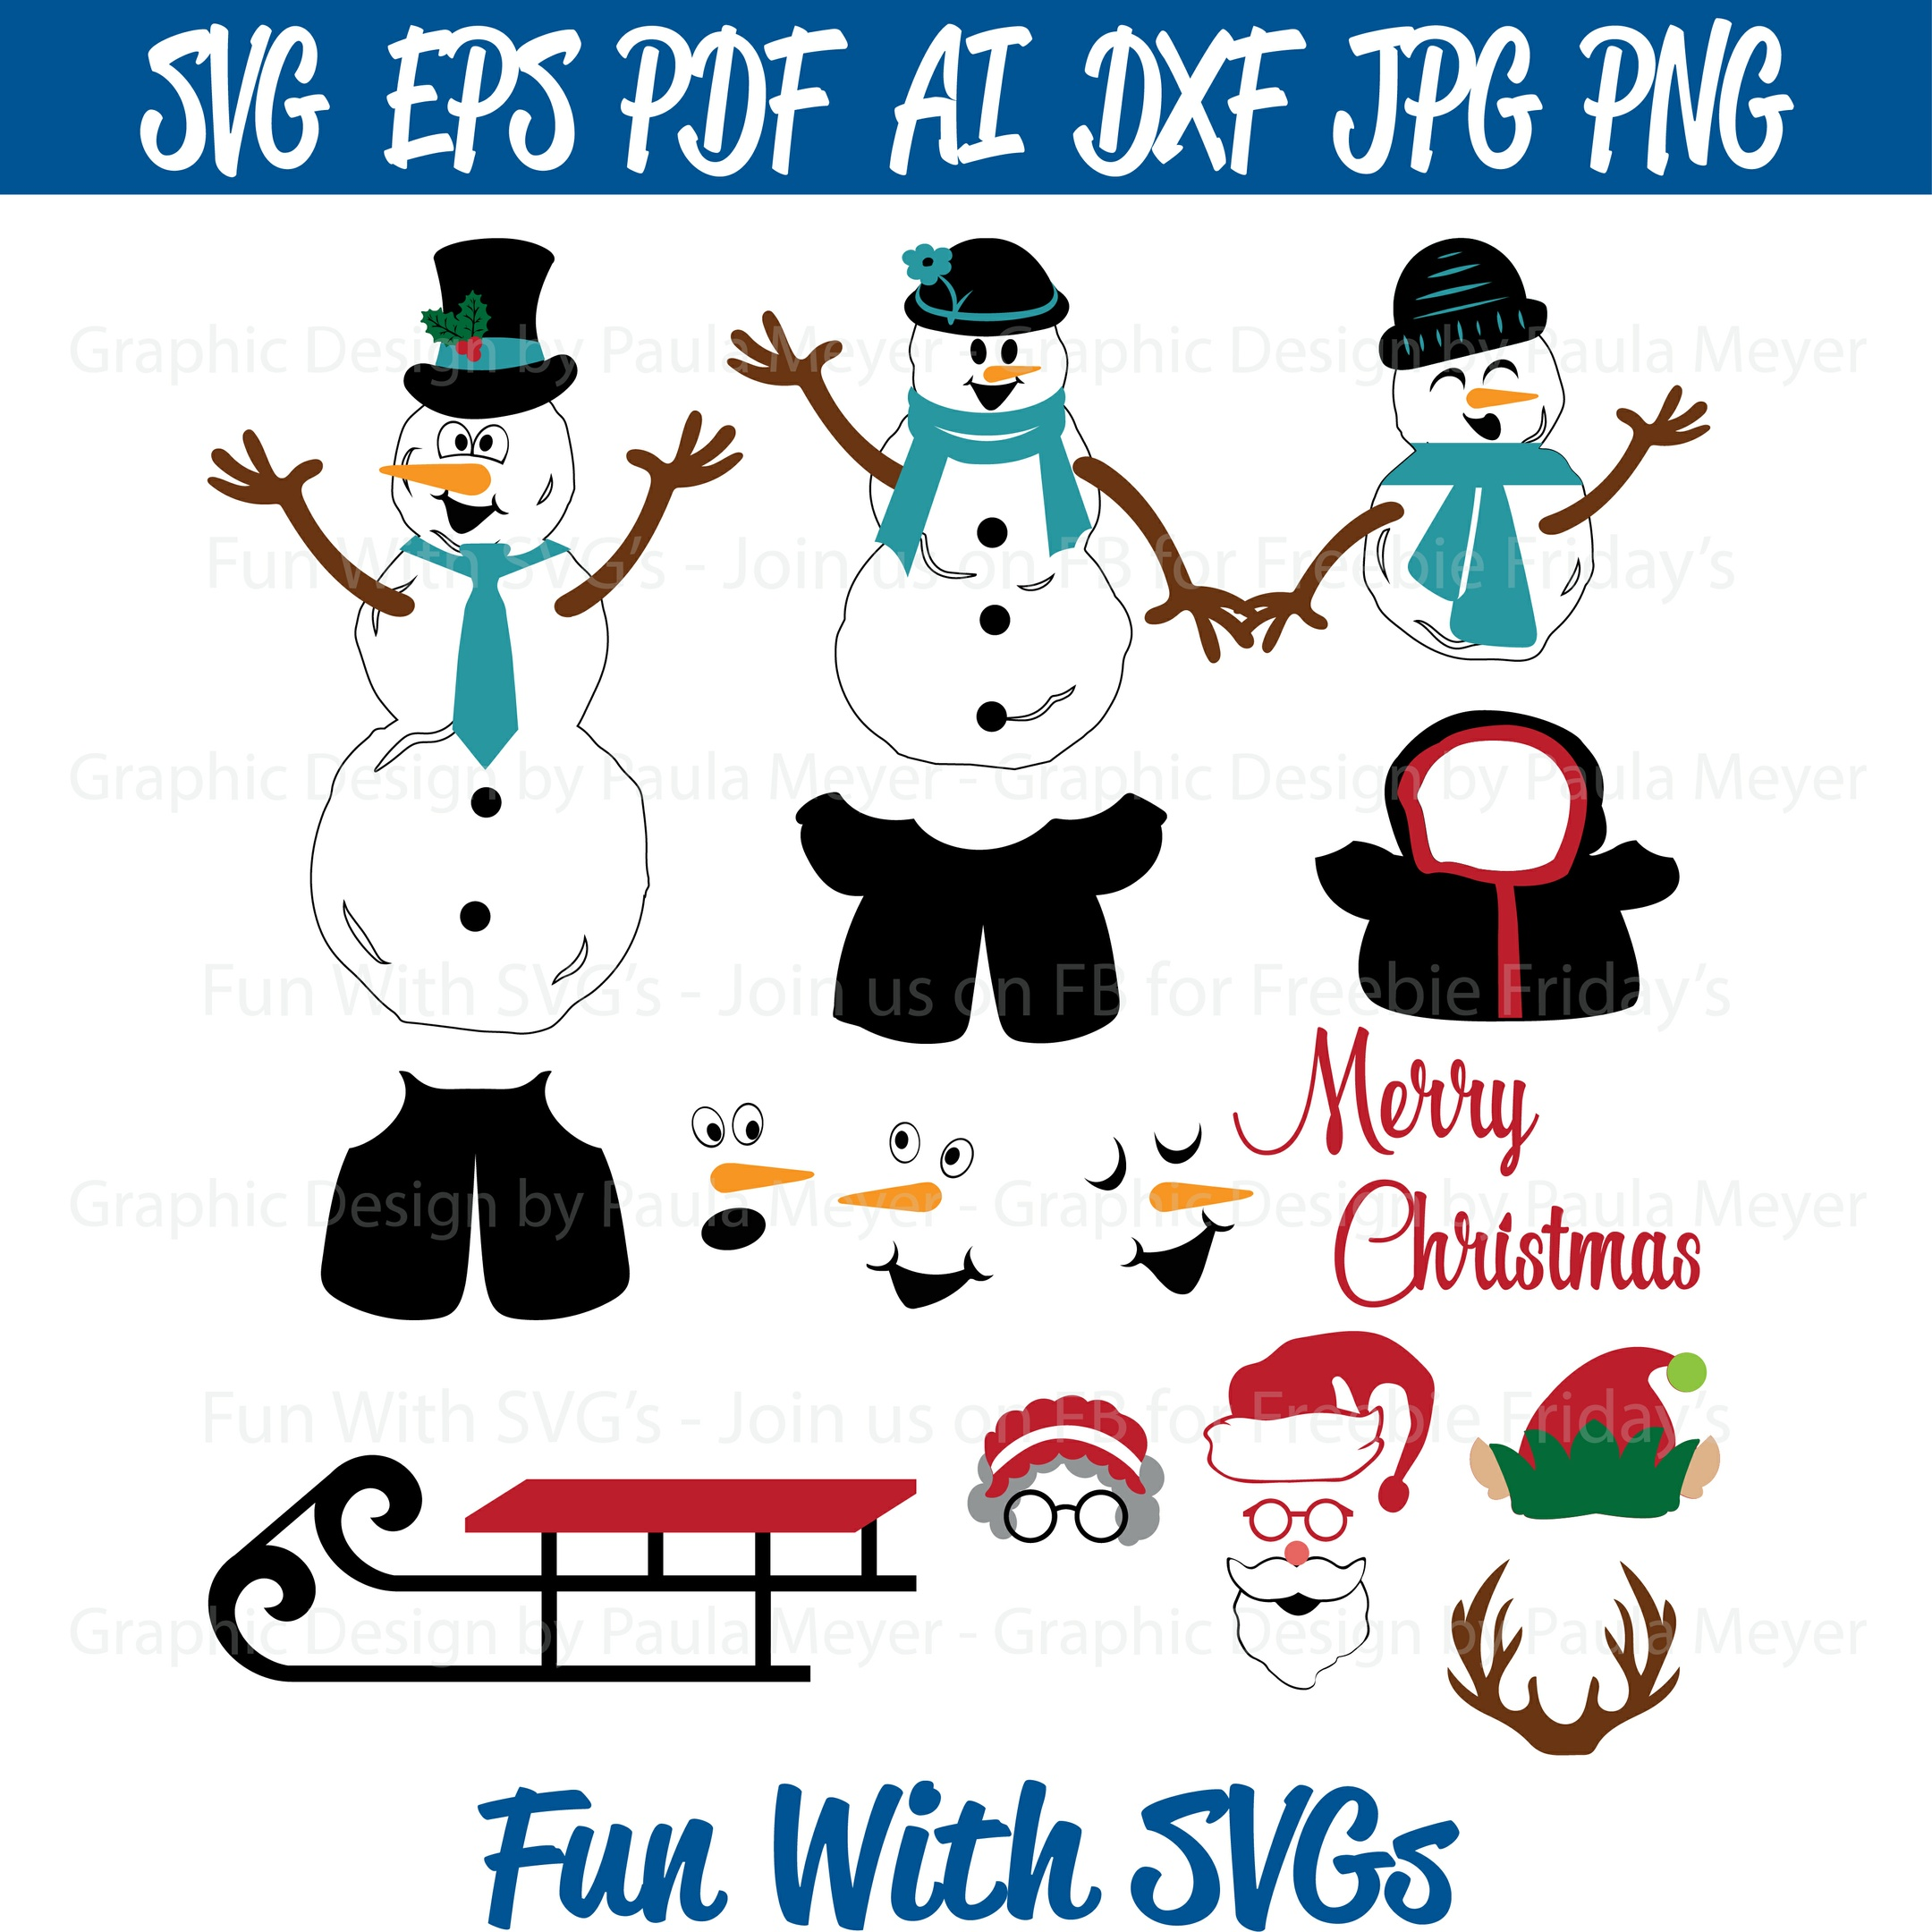 Do You Want to Build a Snowman - SVG Cut File, High Res. Printable Graphics and Editable Vector Art